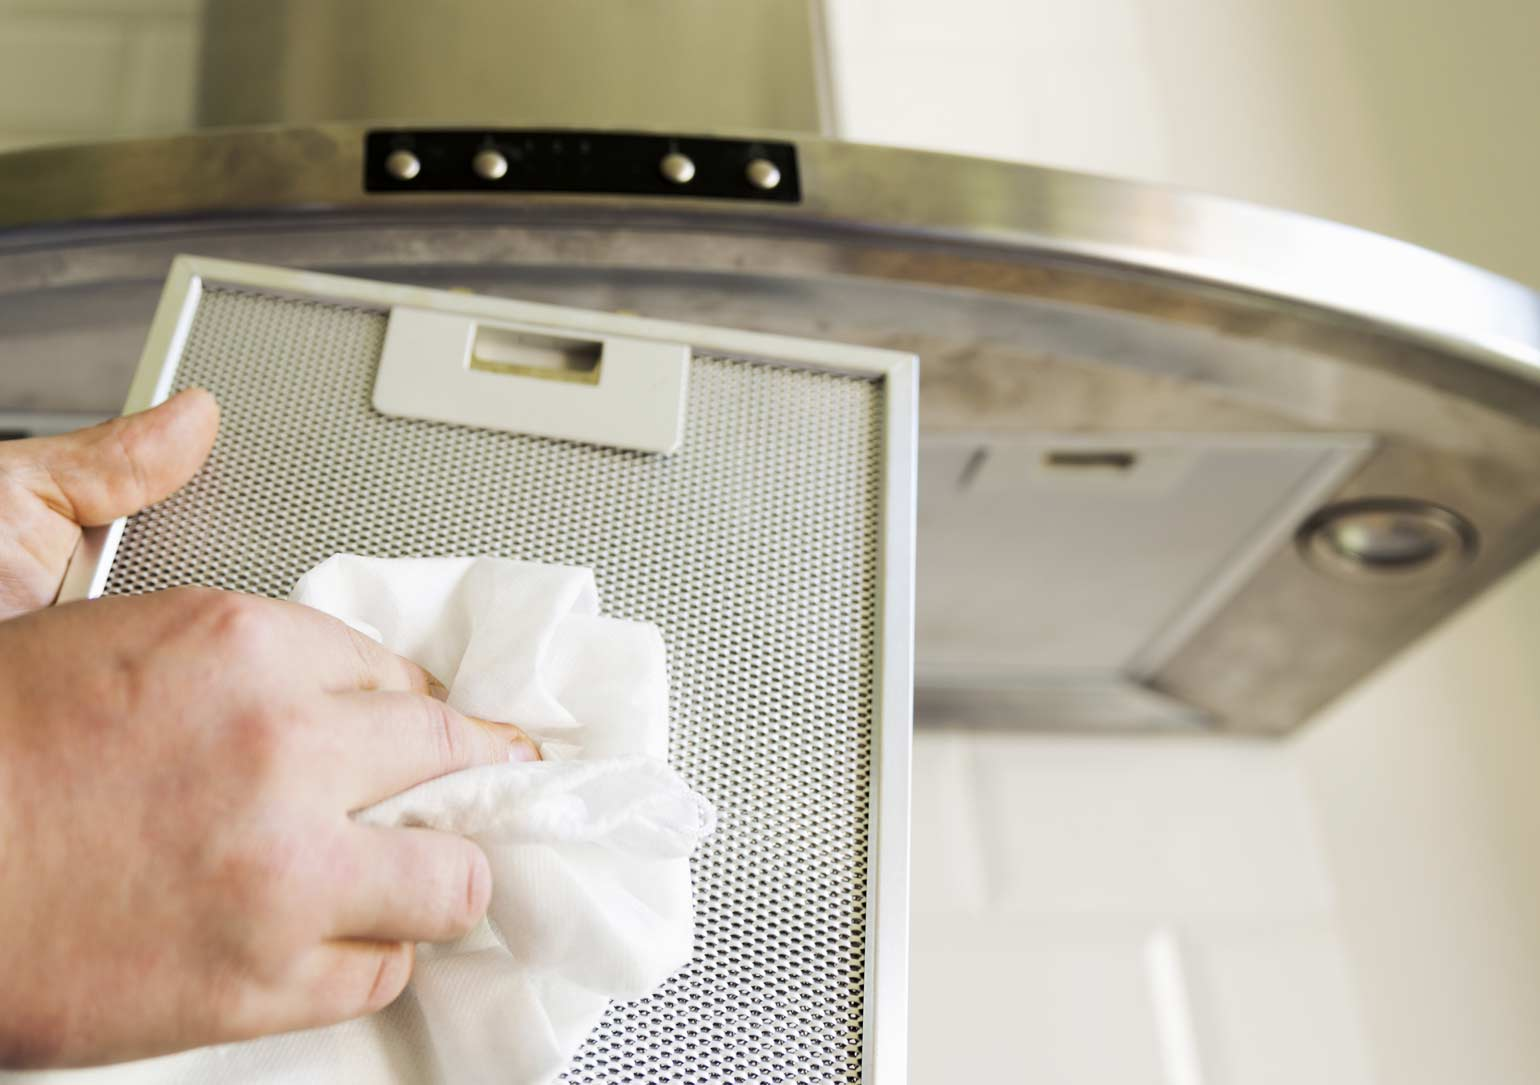 Extractor Filters are fitted as standard with a professional oven cleaning service from Xtreme Cleaning in Northampton